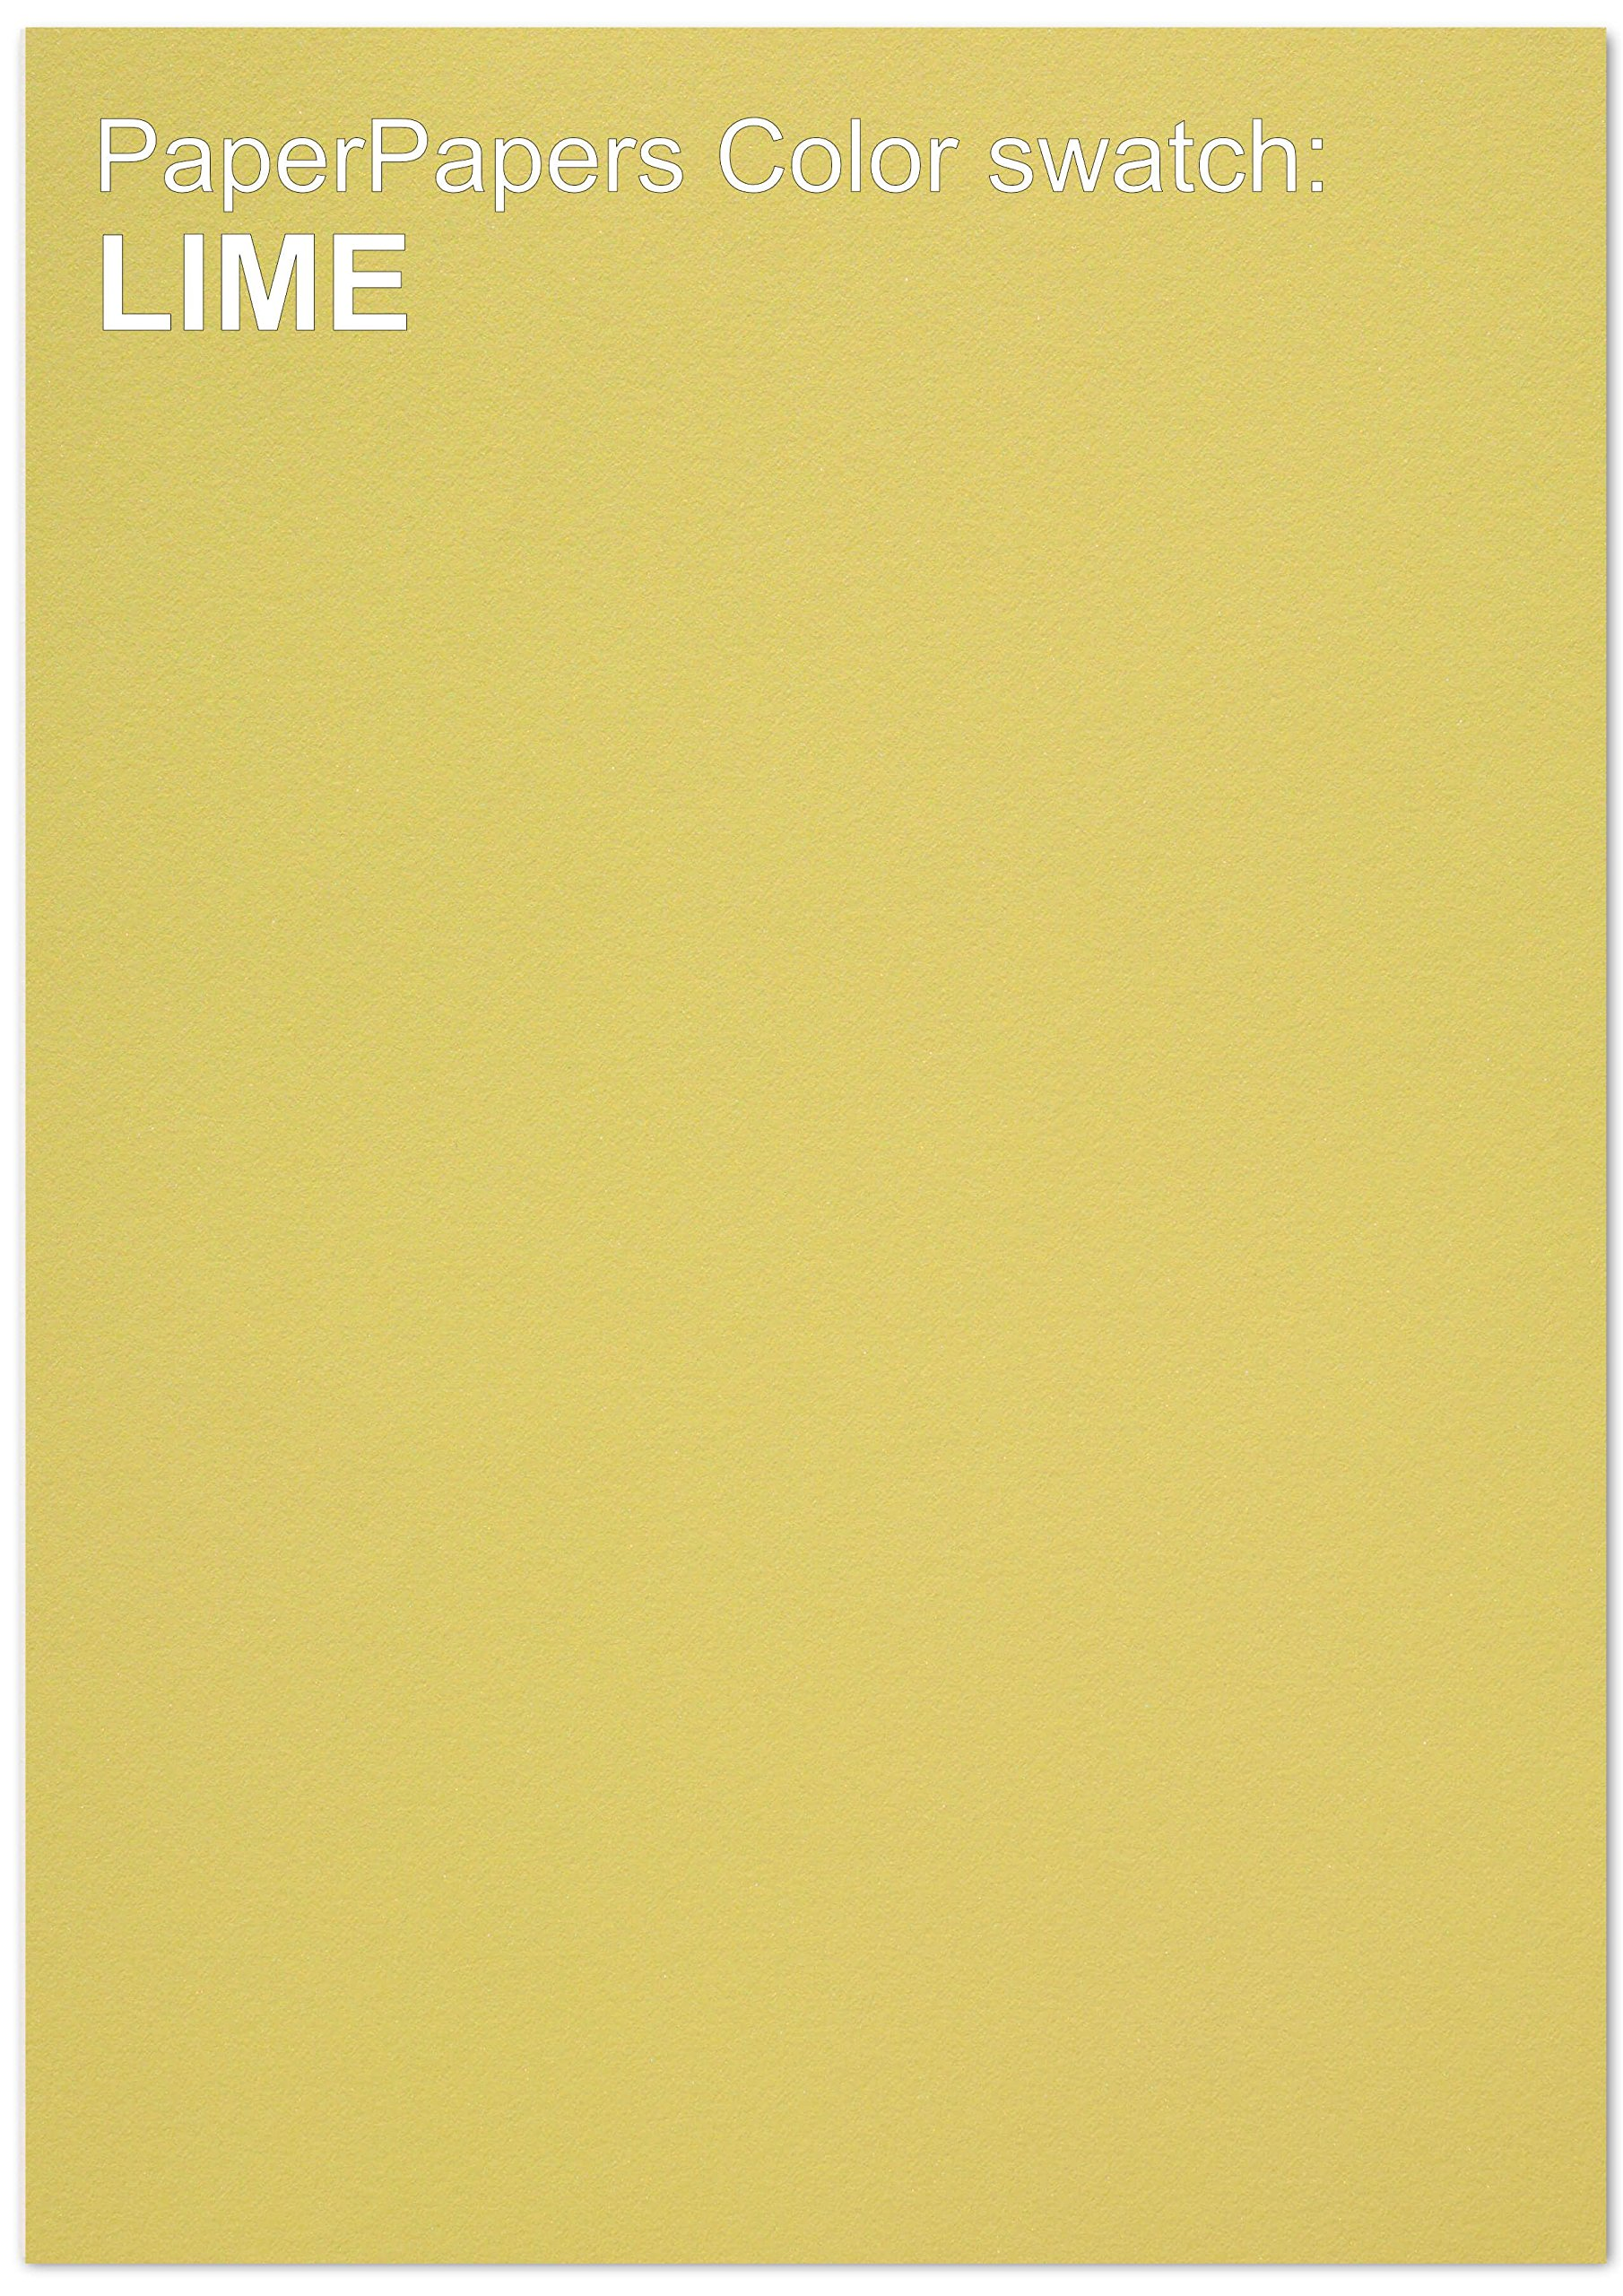 Curious Metallic - LIME Paper - 32T Multipurpose Paper - 12 x 18 - 200 PK by Paper Papers